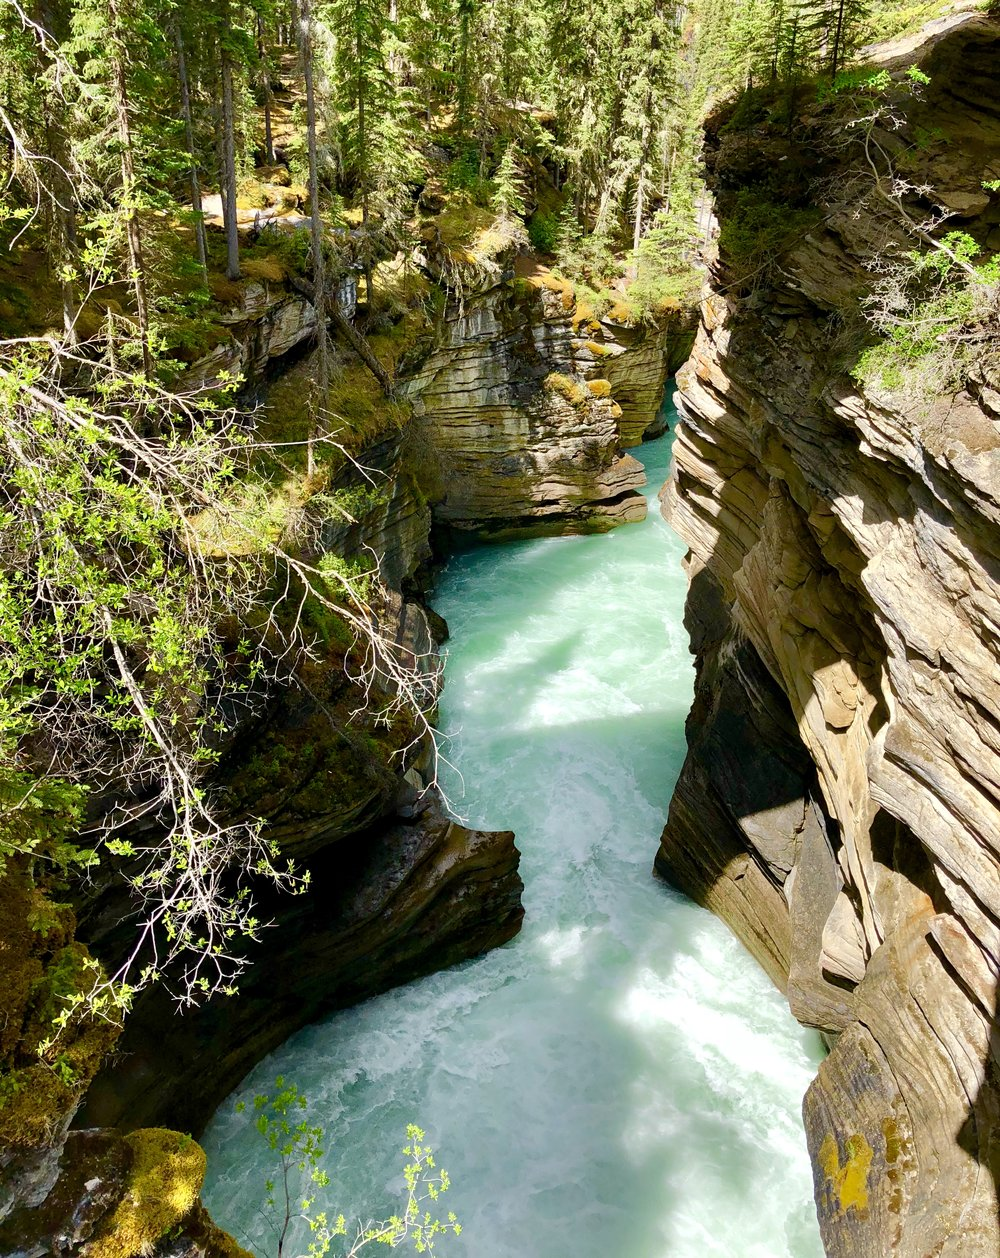 The Canyon at Athabasca Falls exposing the layers of quartzite and limestone (photo by: @thelotuspage)